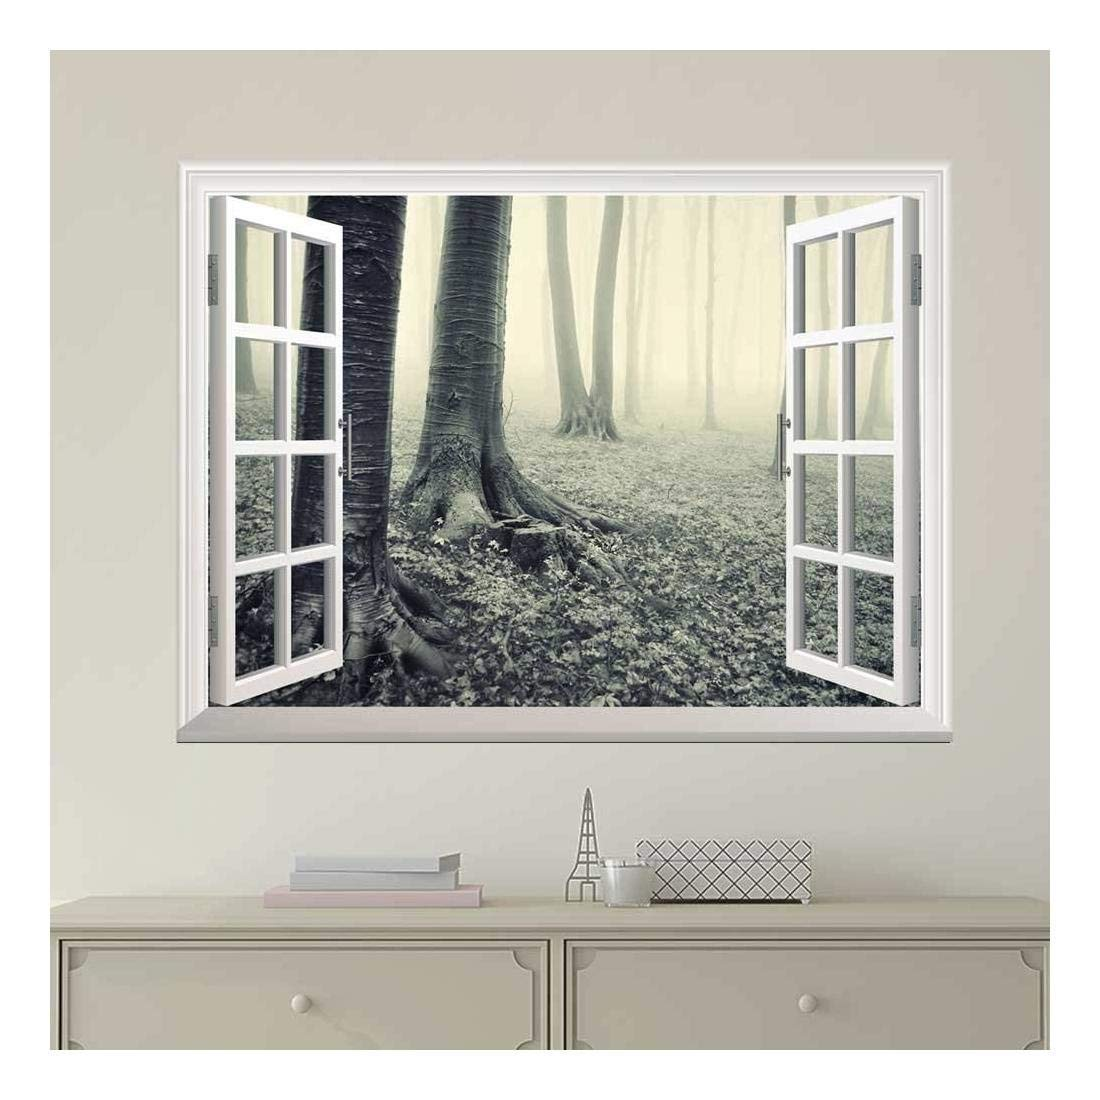 wall26 Modern White Window Looking Out Into a Gray Foggy Forest - Wall Mural, Removable Sticker, Home Decor - 24x32 inches